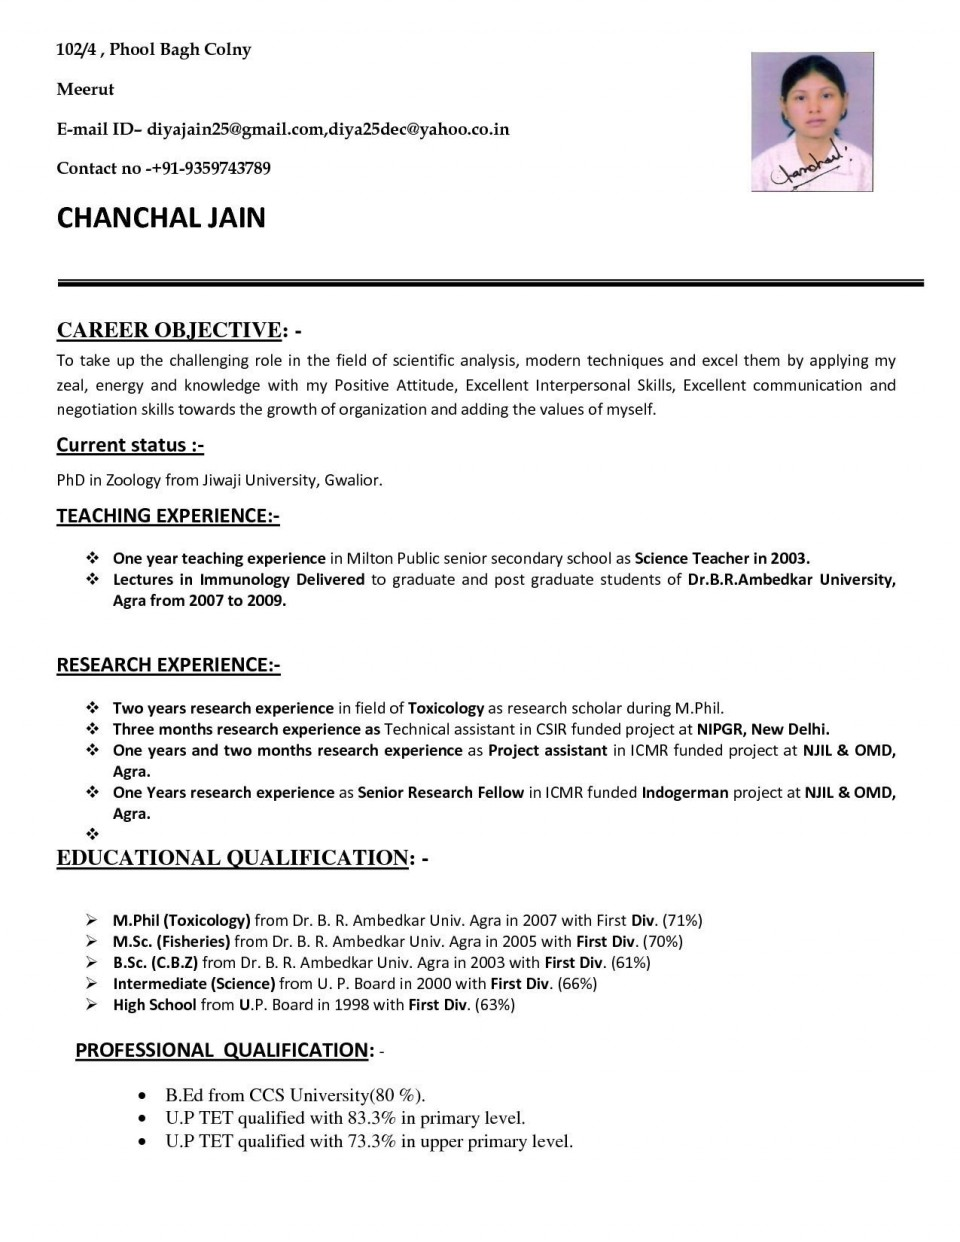 002 Magnificent Resume Example For Teaching Job  Sample Position In College Format960